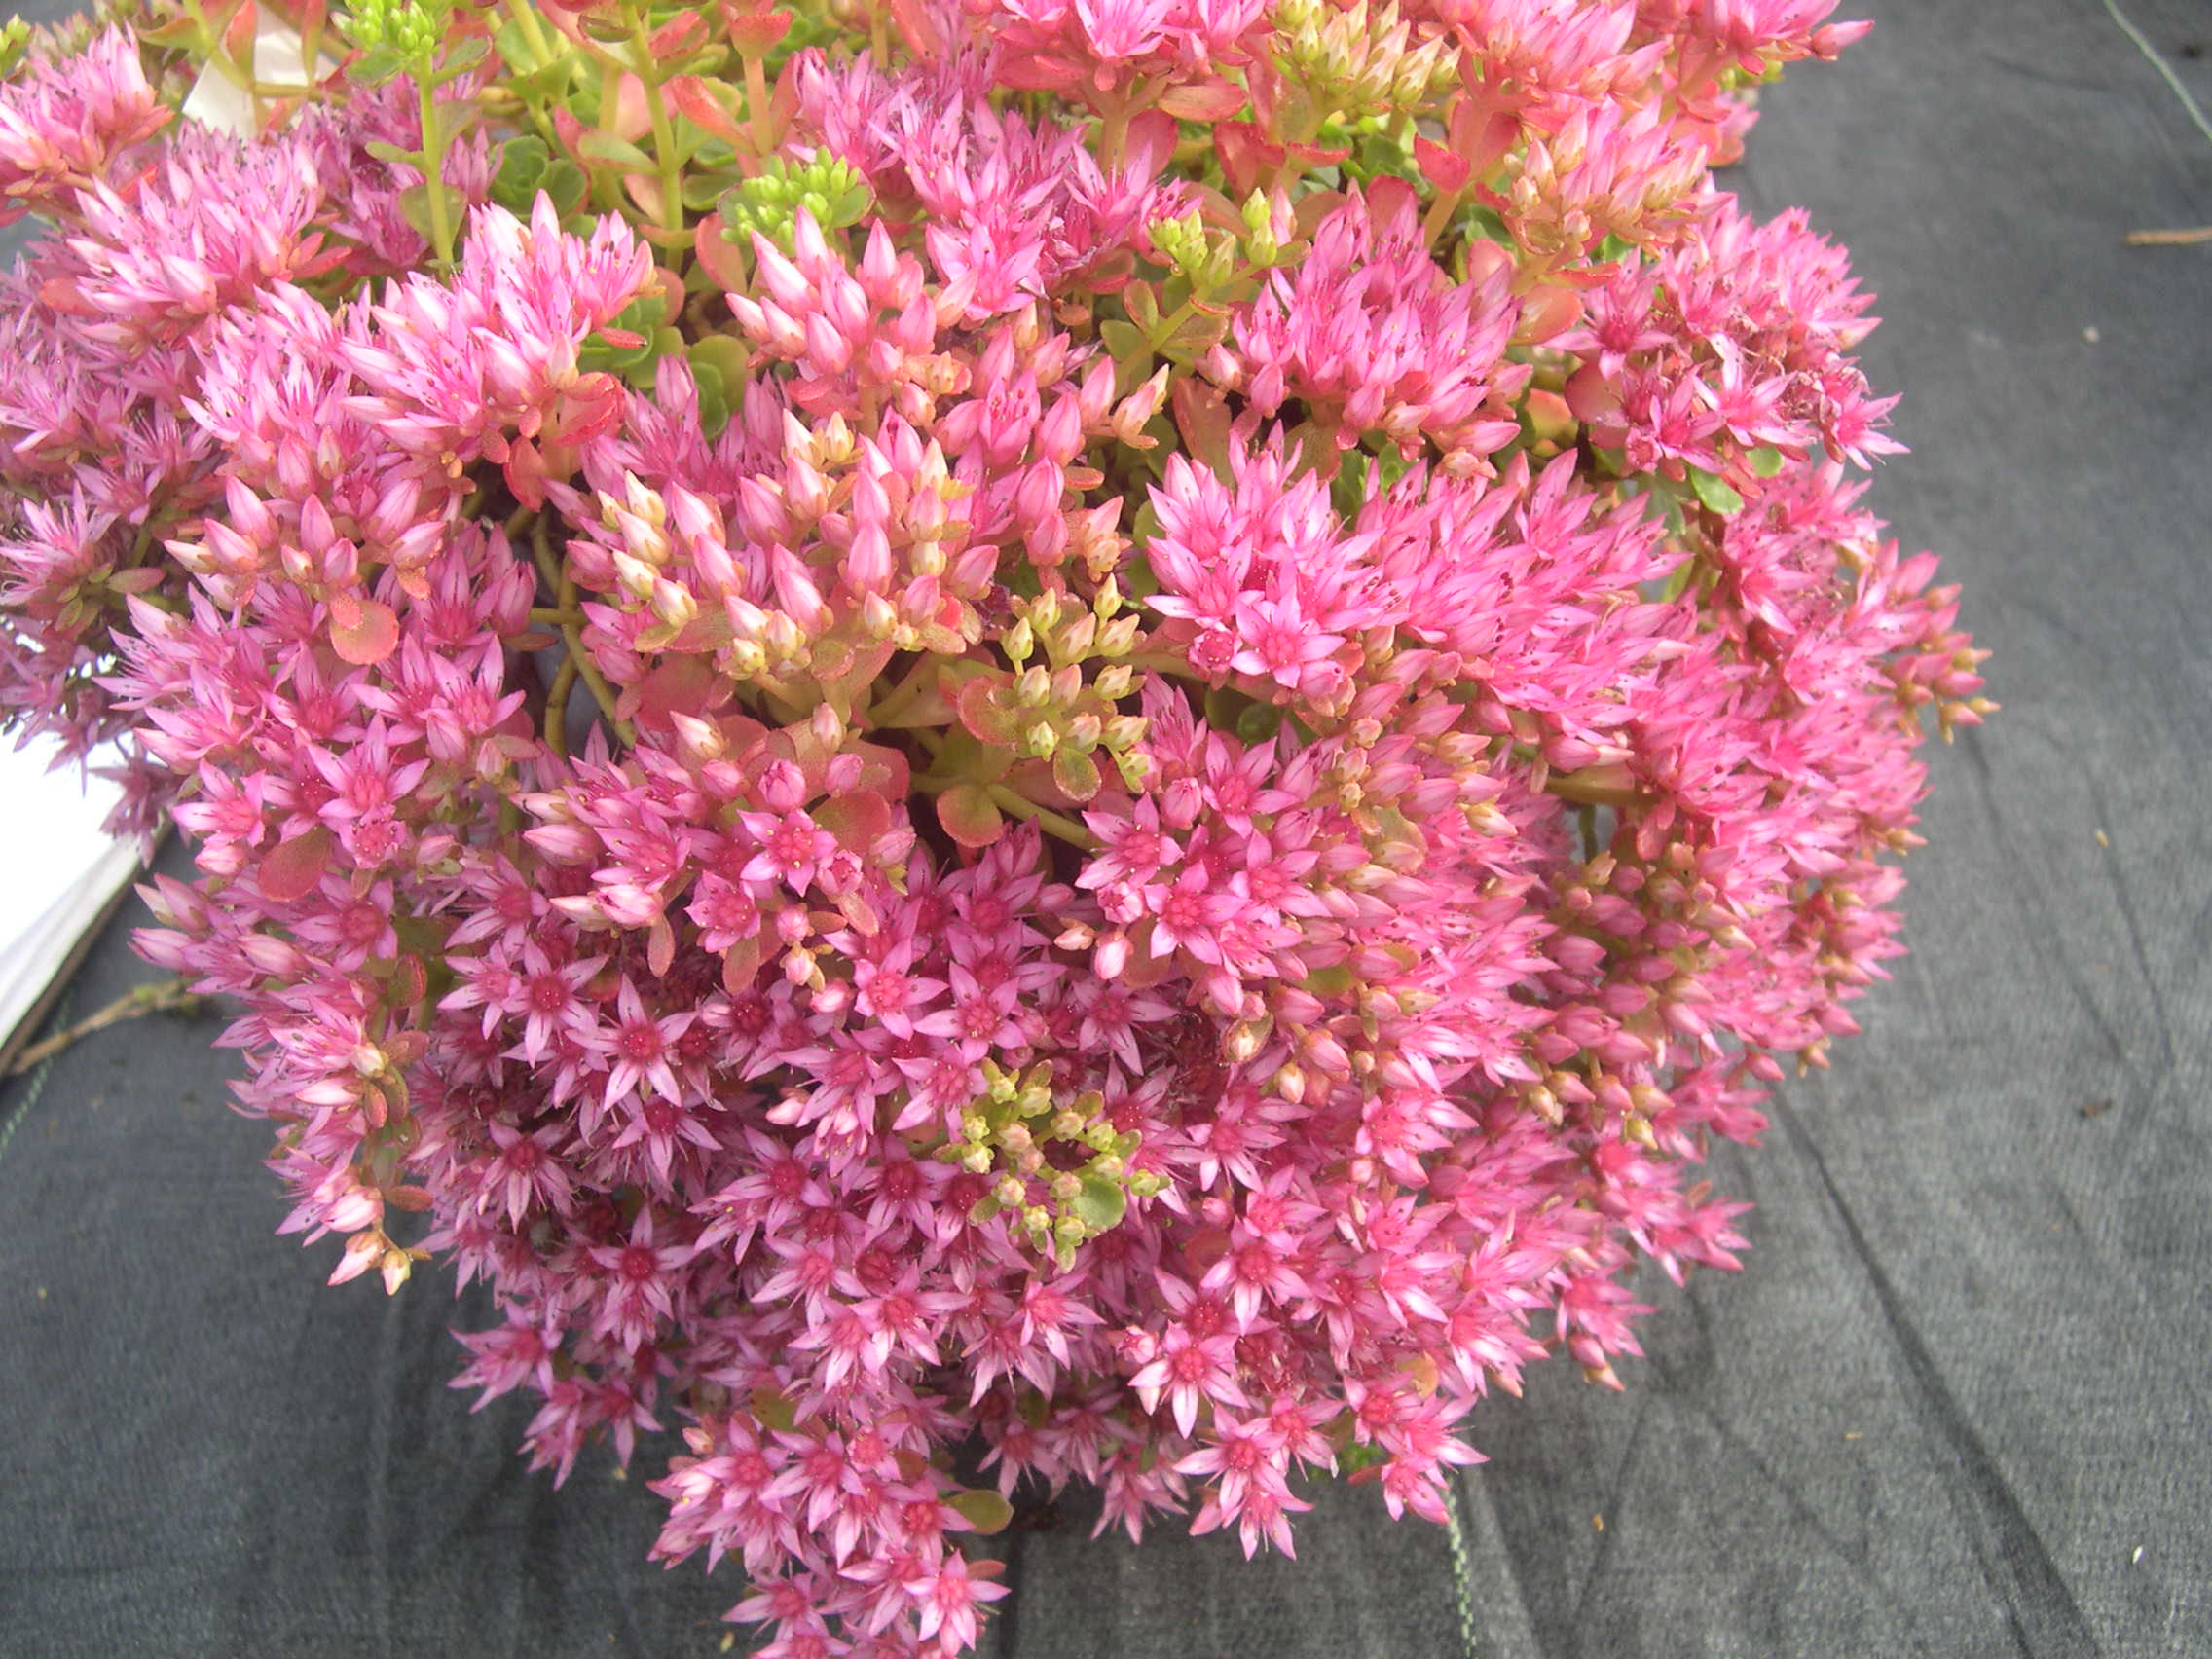 Sedum spurium 'Dr. John Creech' [Phedimus spurius 'Dr. John Creech'] (2)